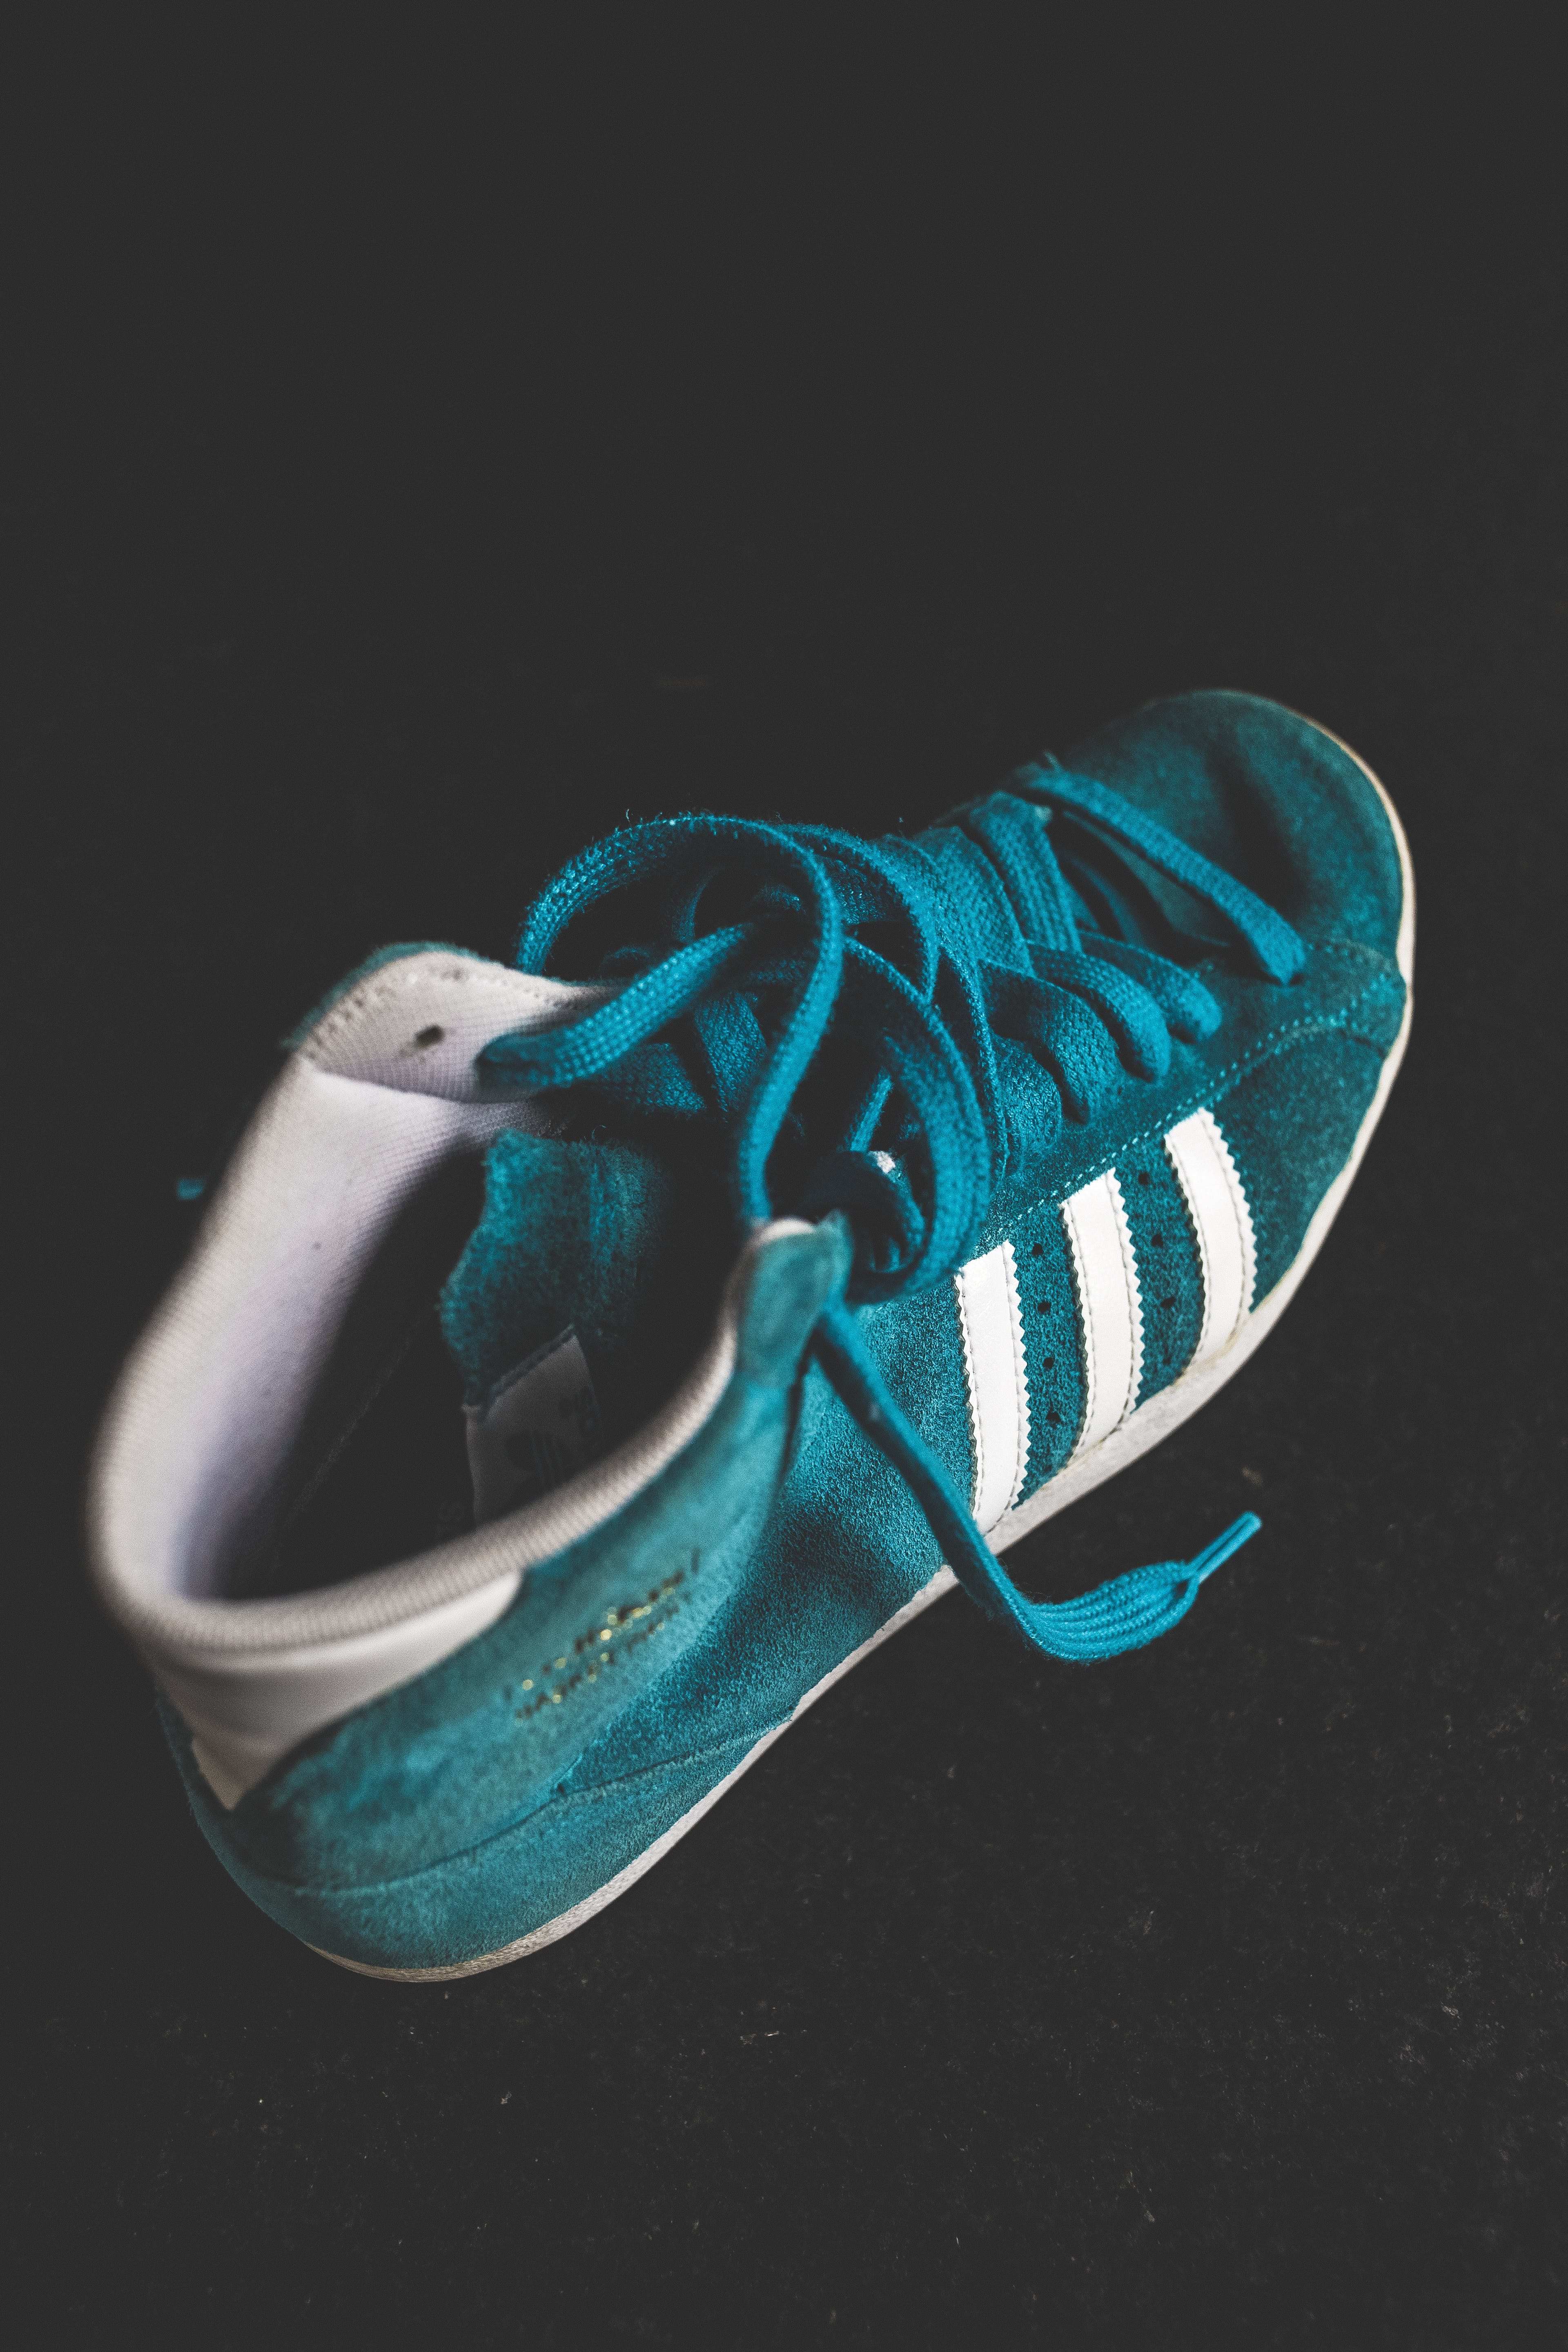 Close-up Photo of a Suede Turquoise and White Adidas High-top Sneaker